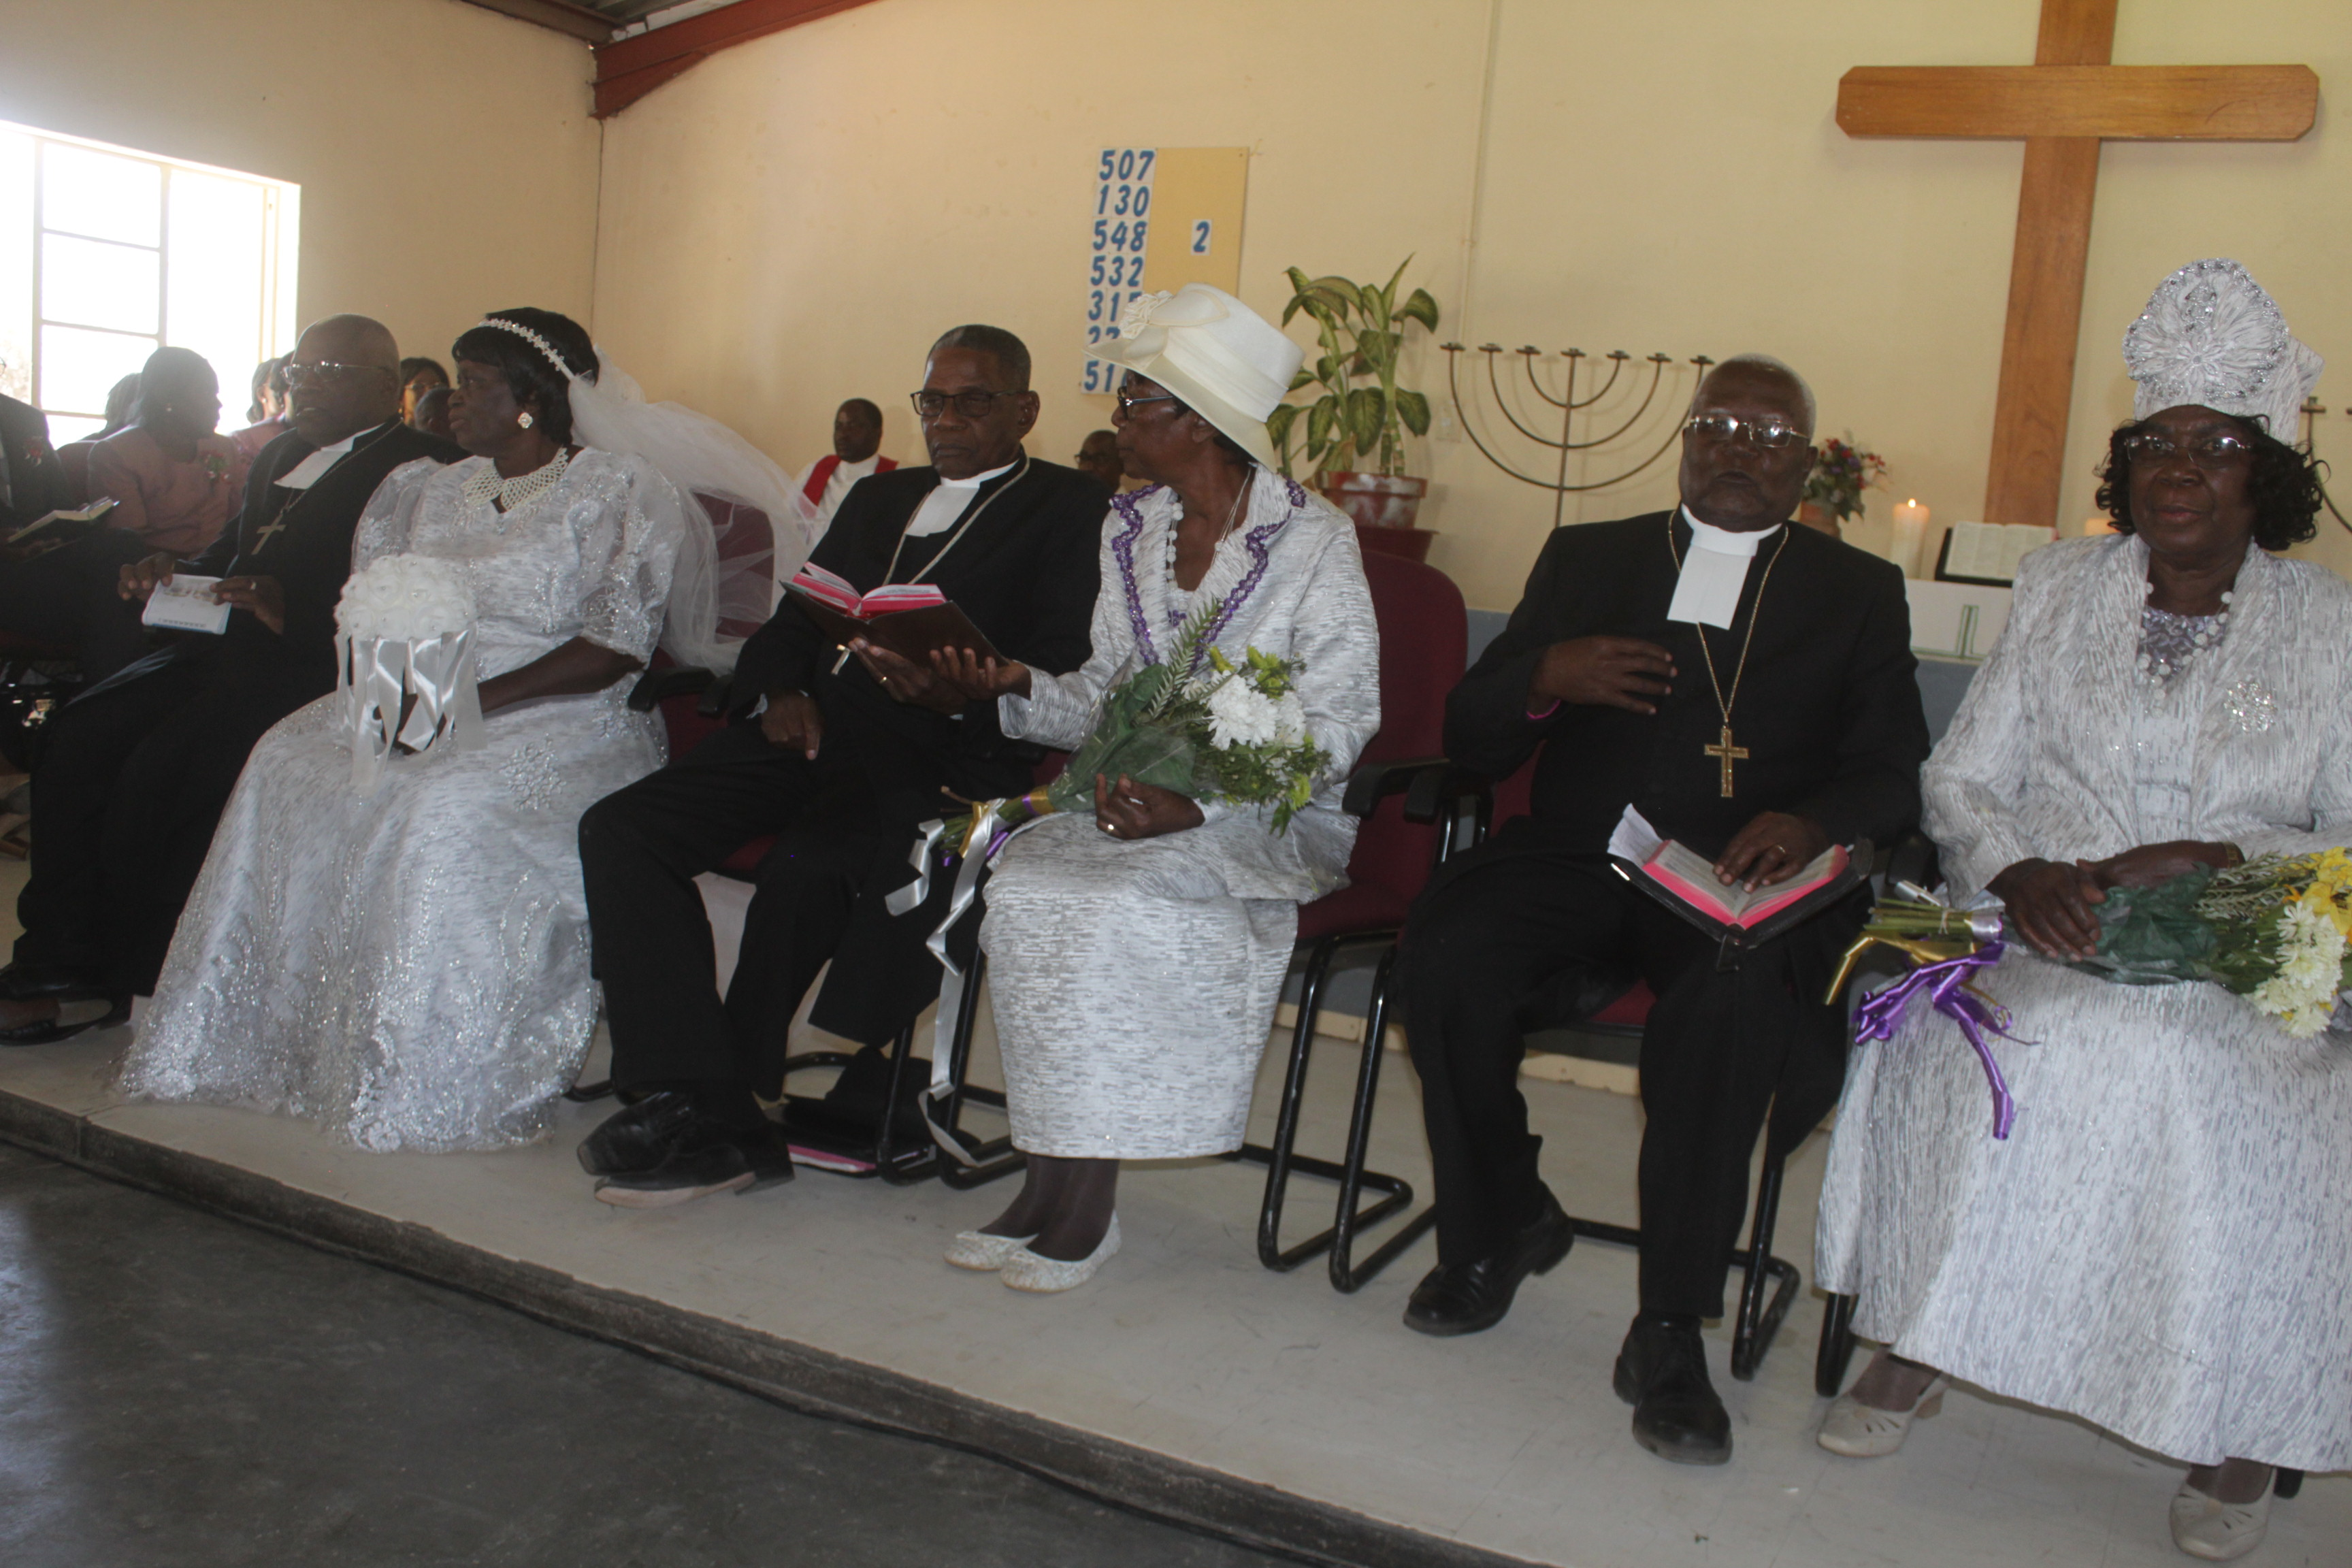 Retired bishops celebrate wedding anniversaries - Local ...